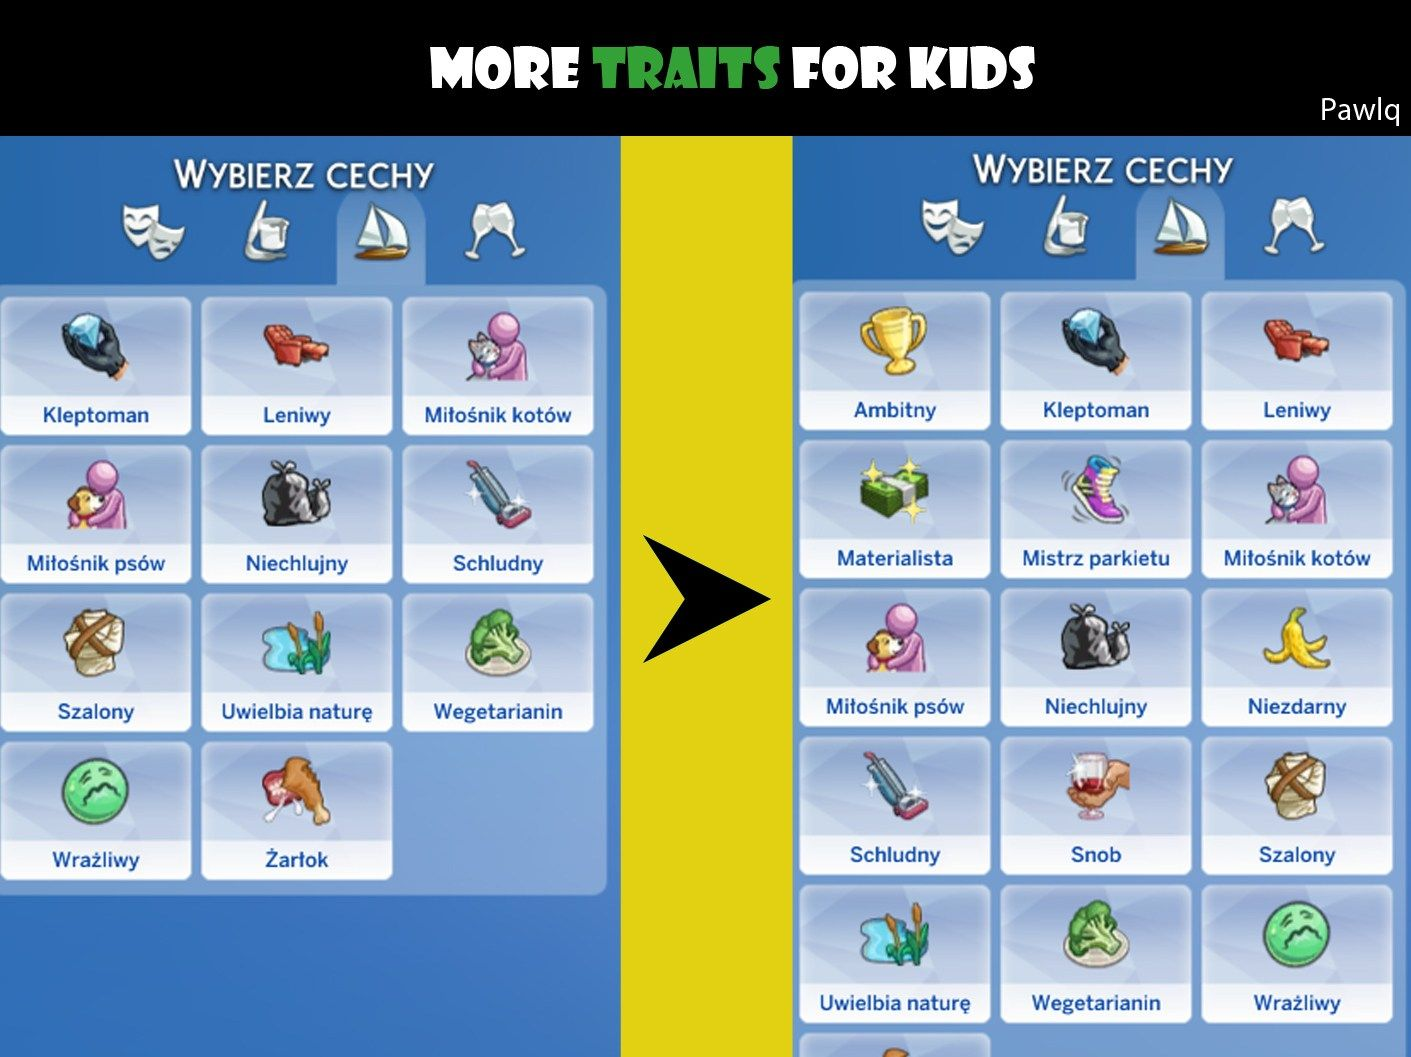 More Traits For Kids The Sims 4 Catalog In 2020 Sims 4 Gameplay Sims 4 Traits Sims 4 Game